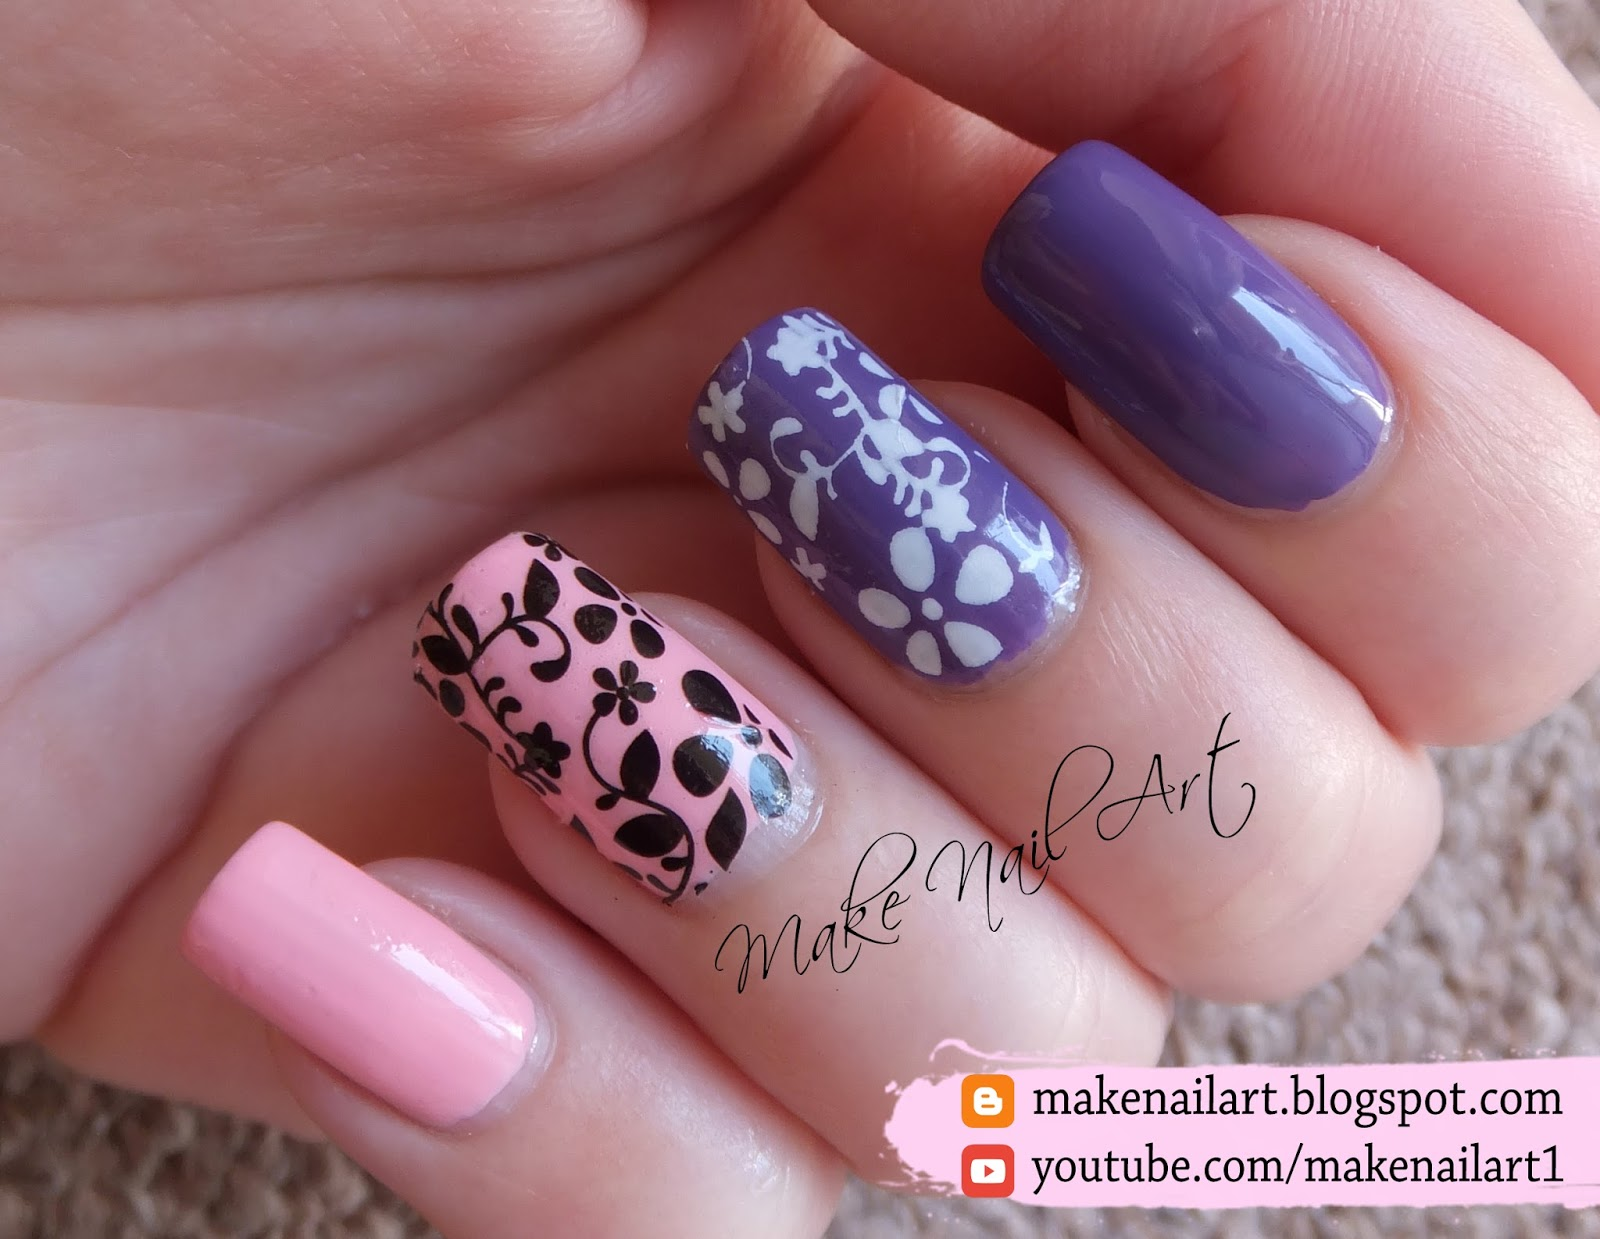 Make nail art floral water decals nail art design tutorial you can watch video tutorial here prinsesfo Images